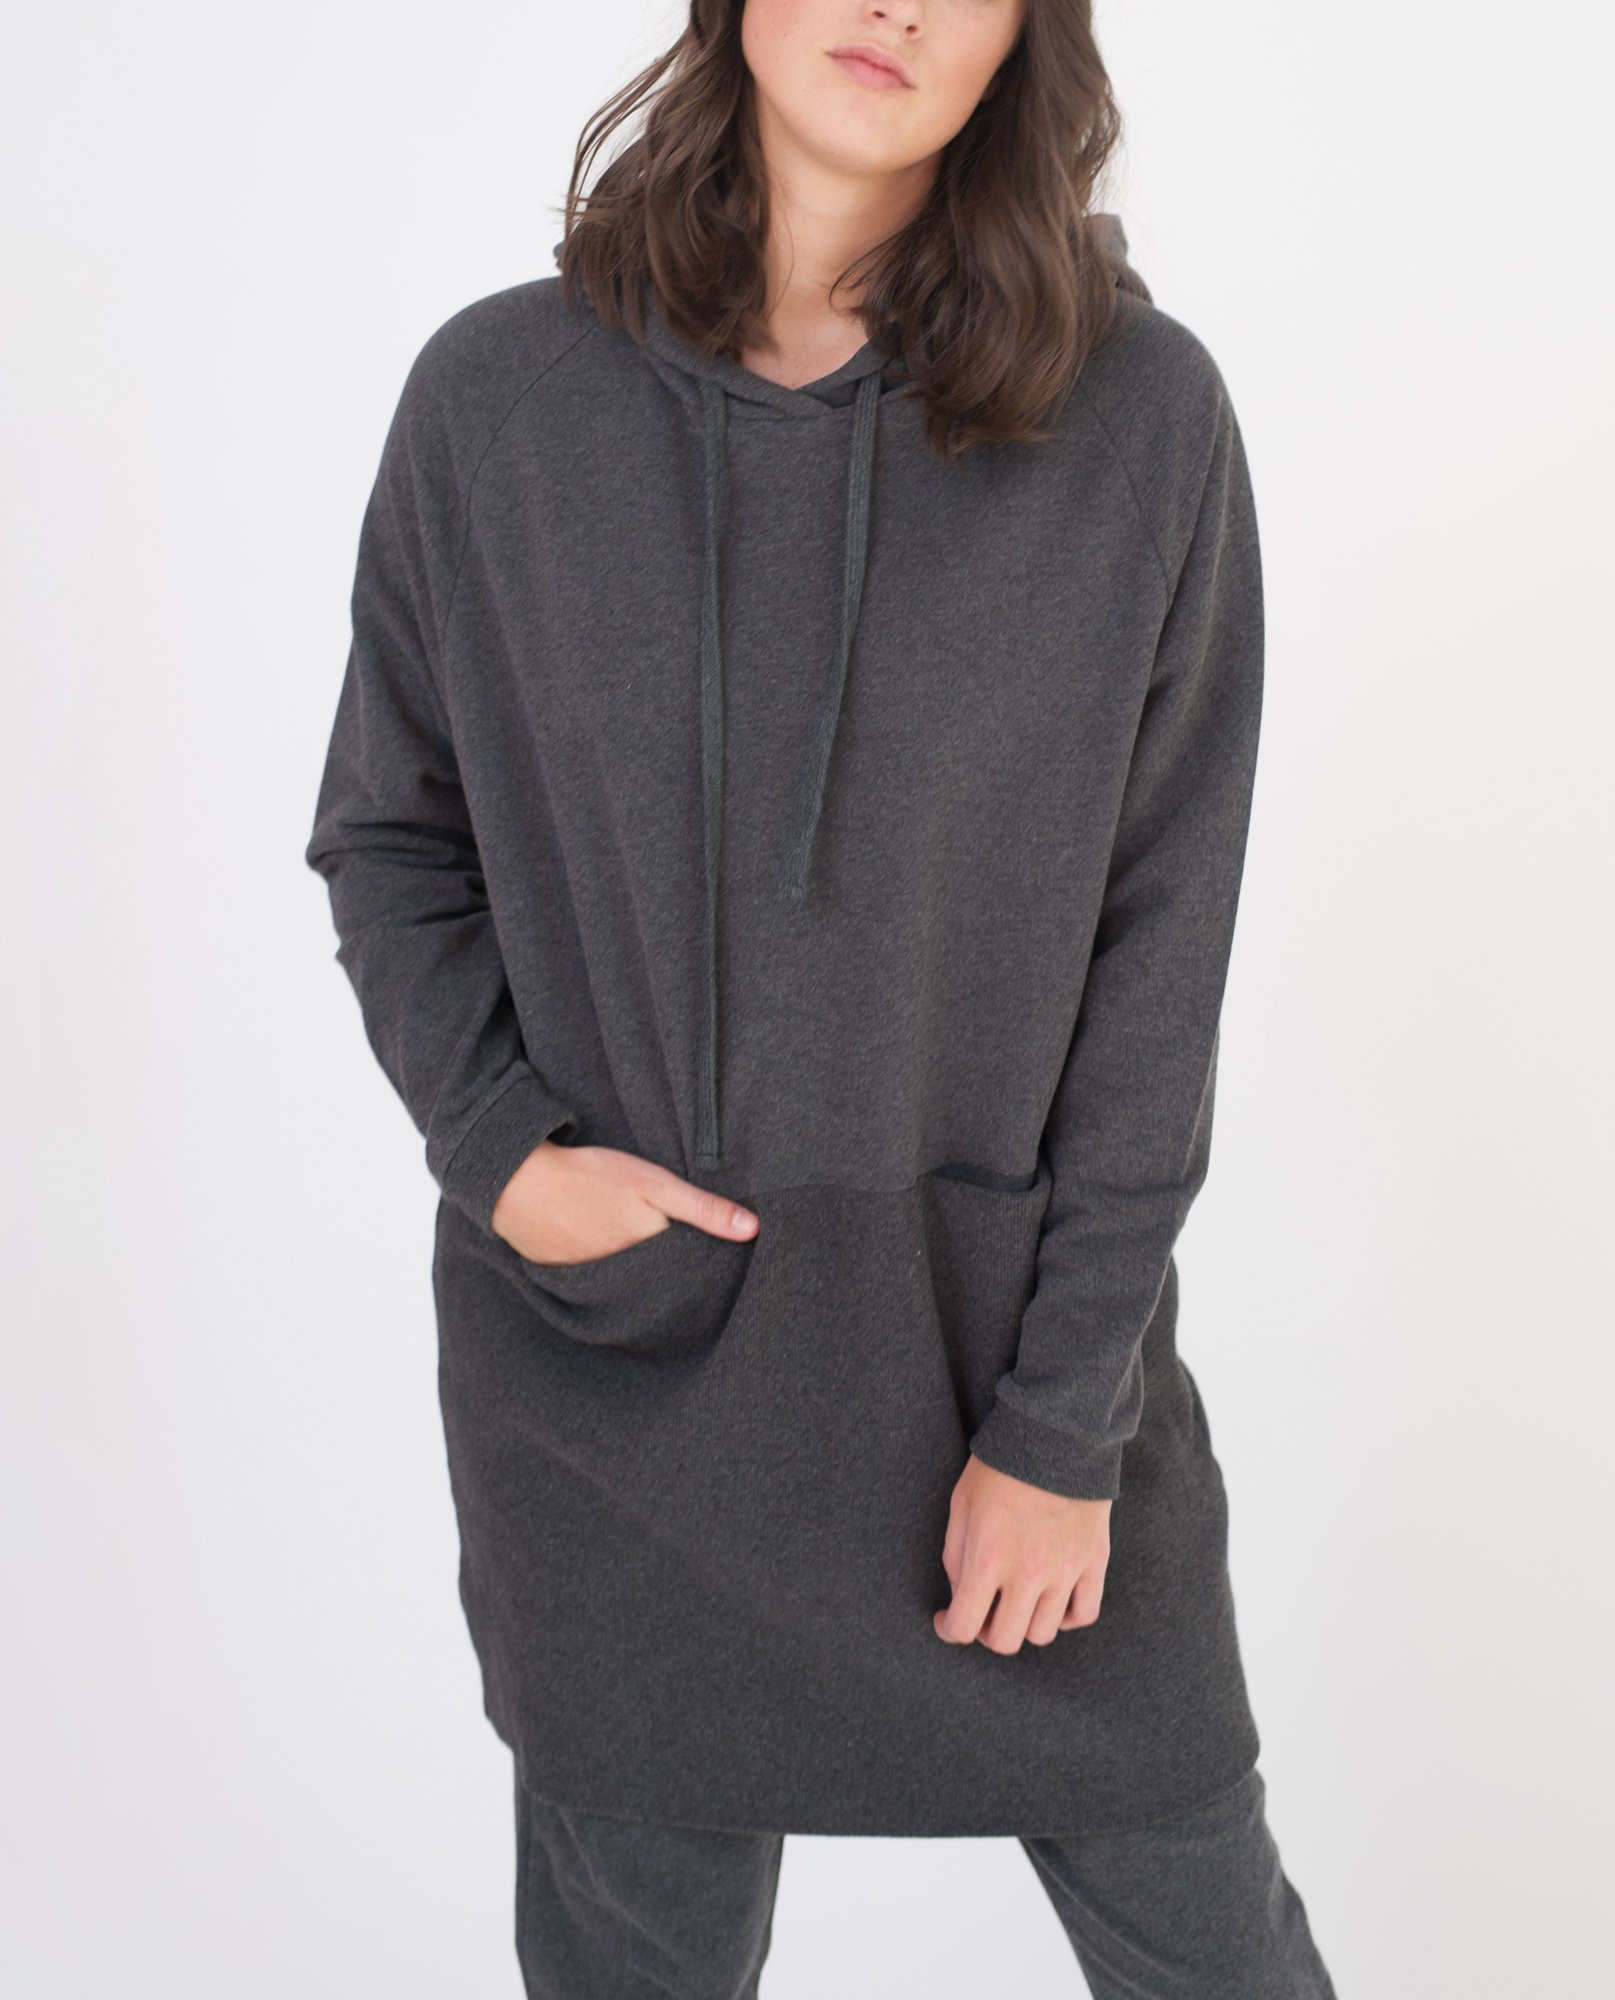 NOAH Organic Cotton Hooded Dress In Dark Grey from Beaumont Organic